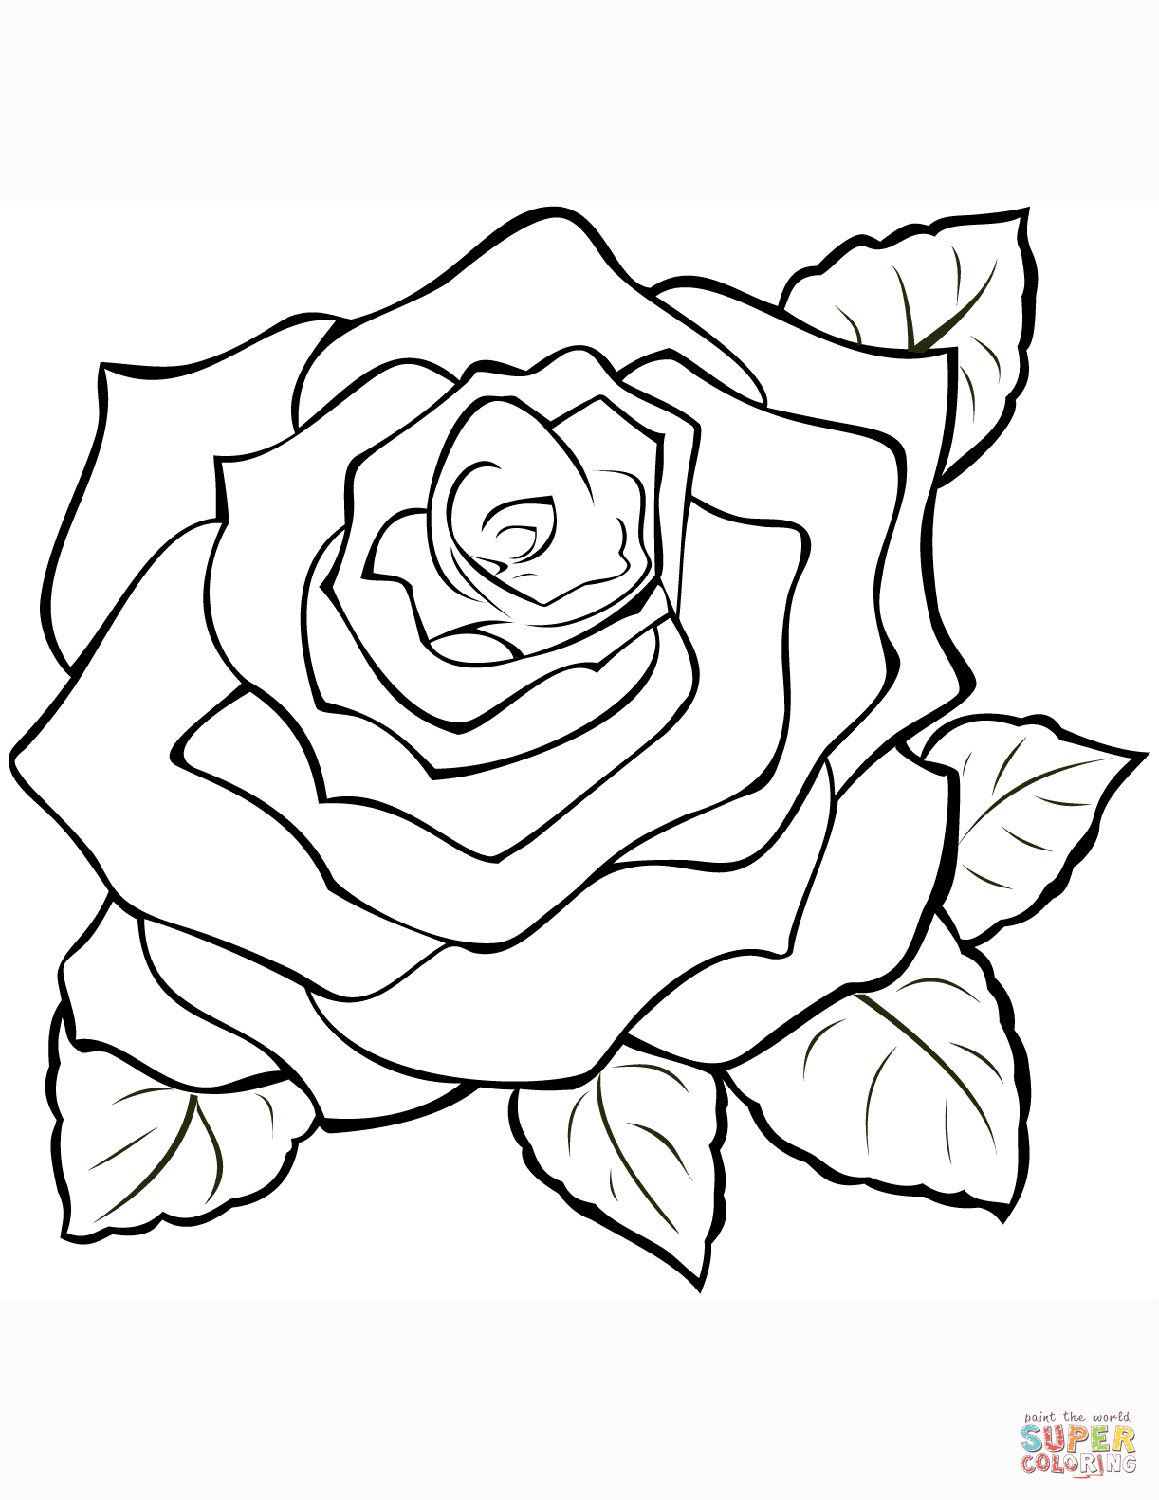 coloring book rose garden of rose coloring page download print online coloring book rose